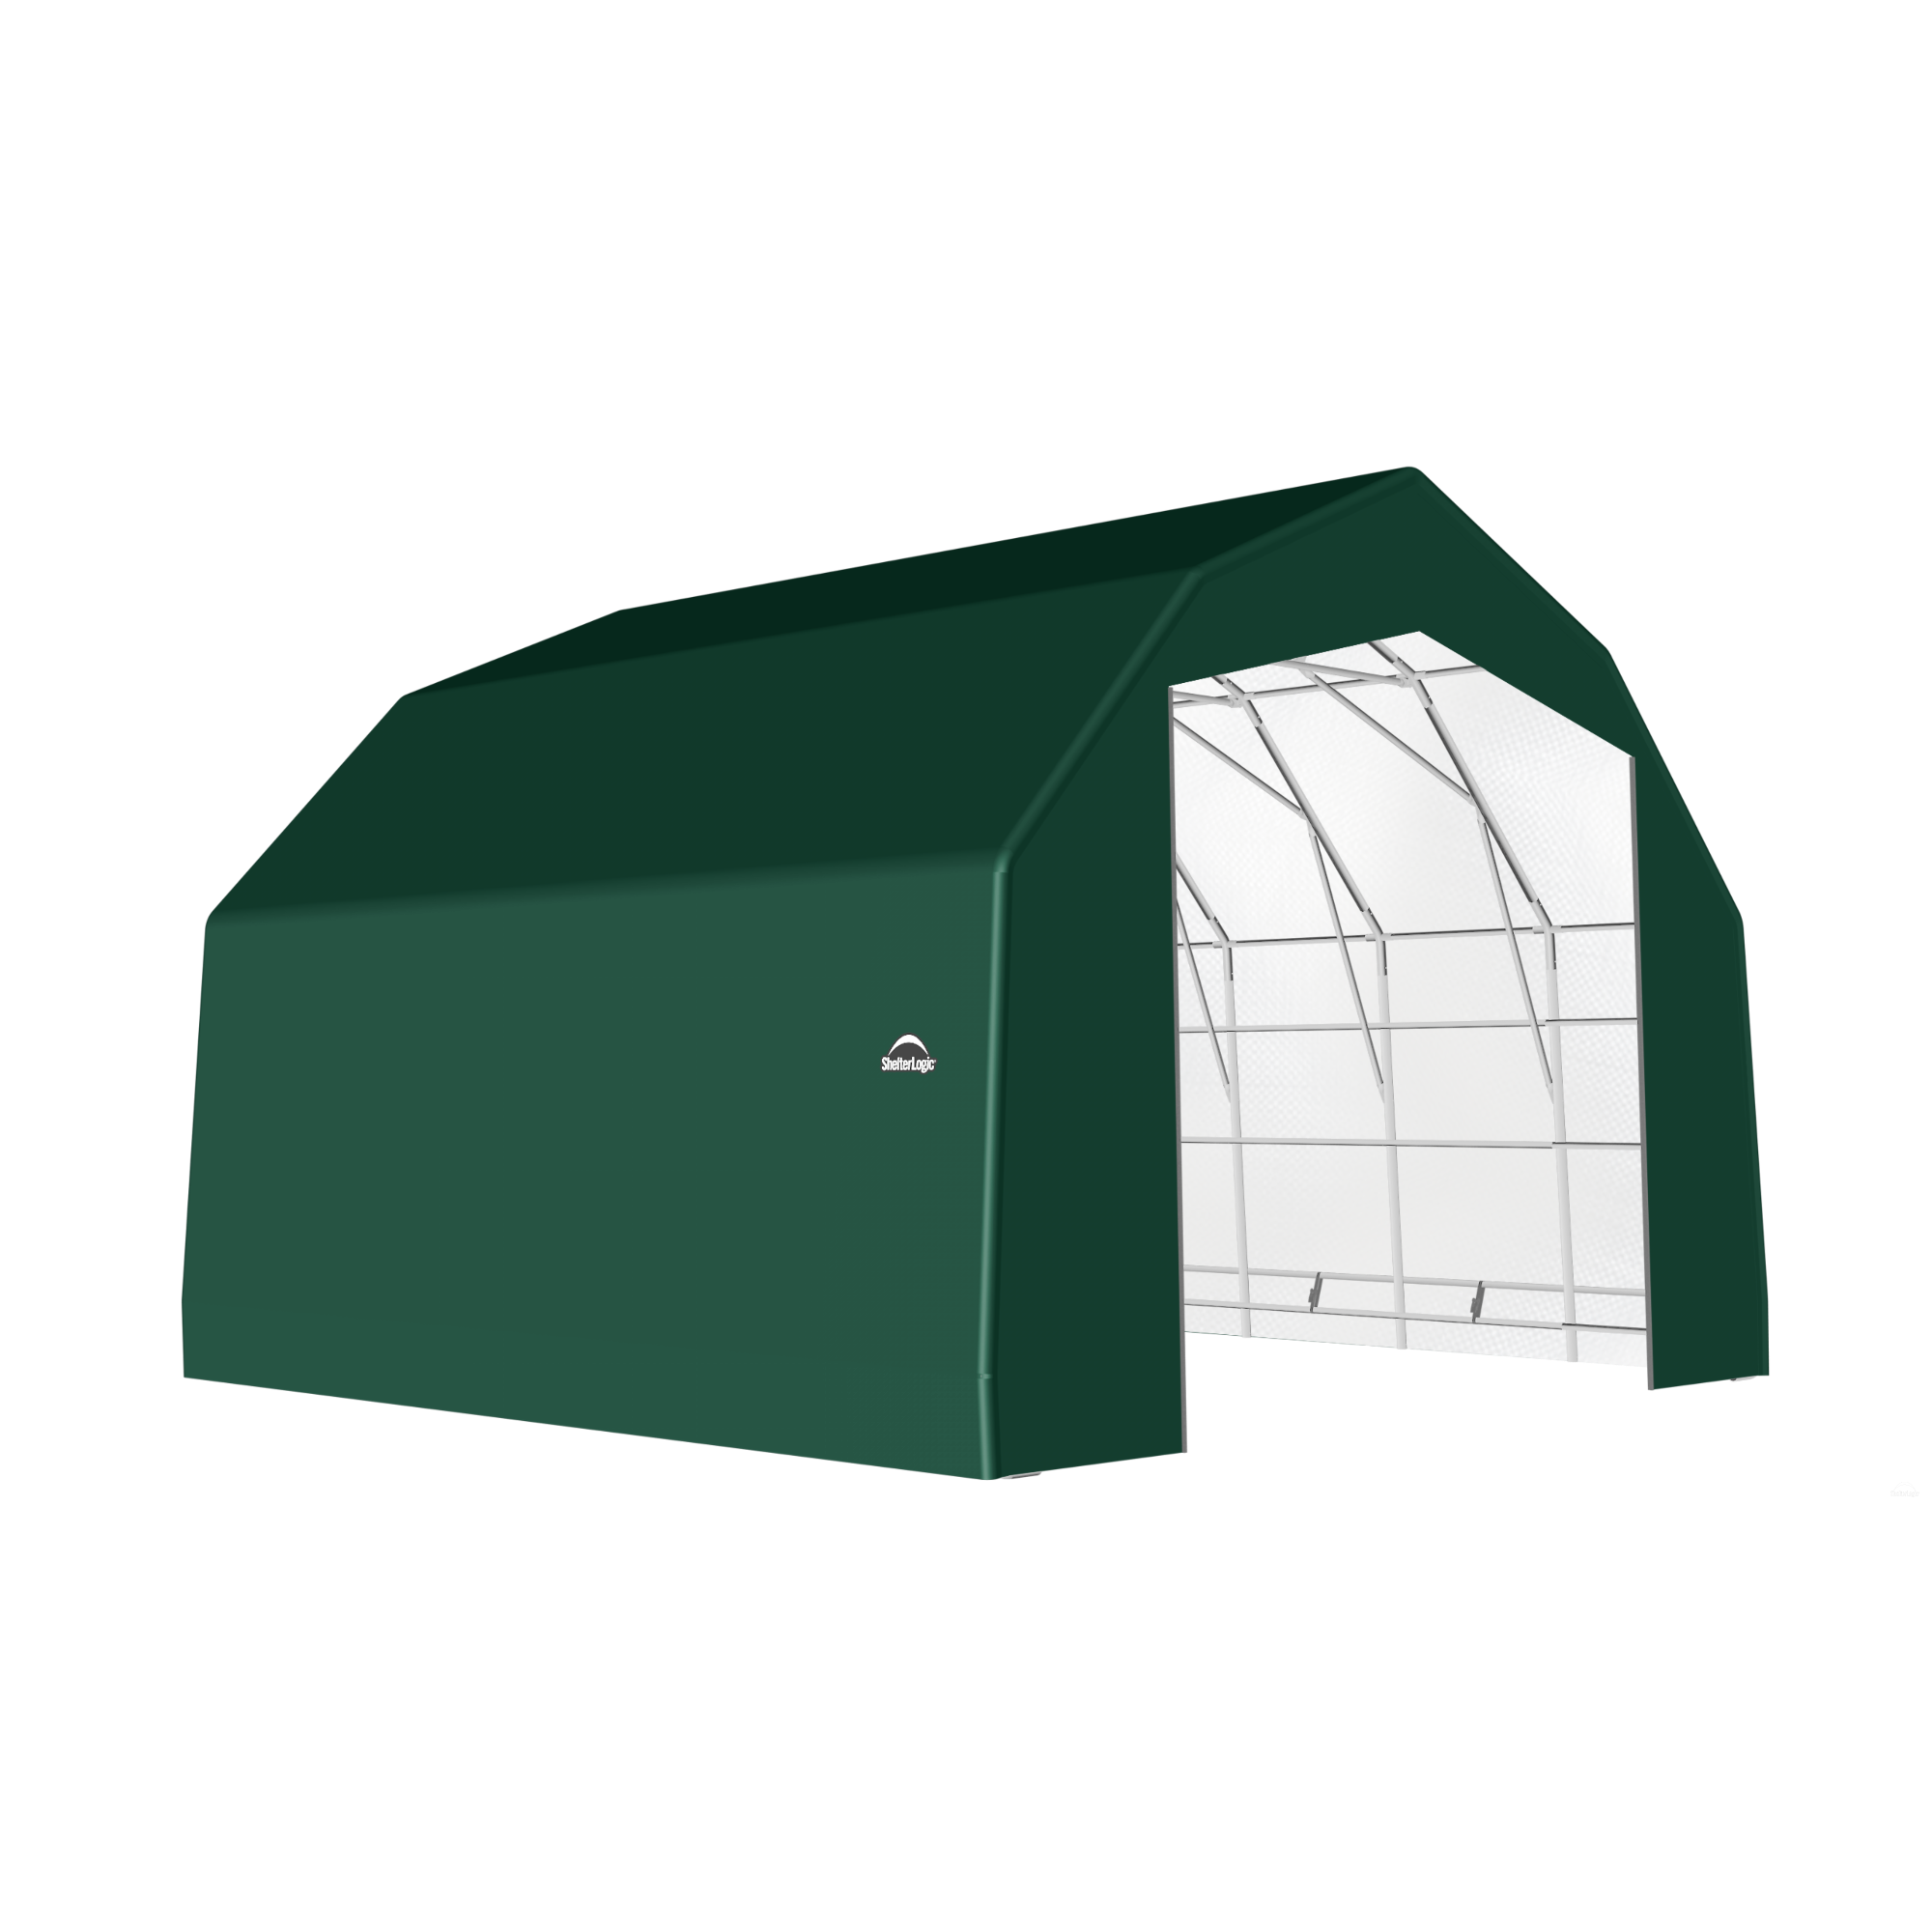 SP Barn 25X20X17 Green 14 oz PE Shelter